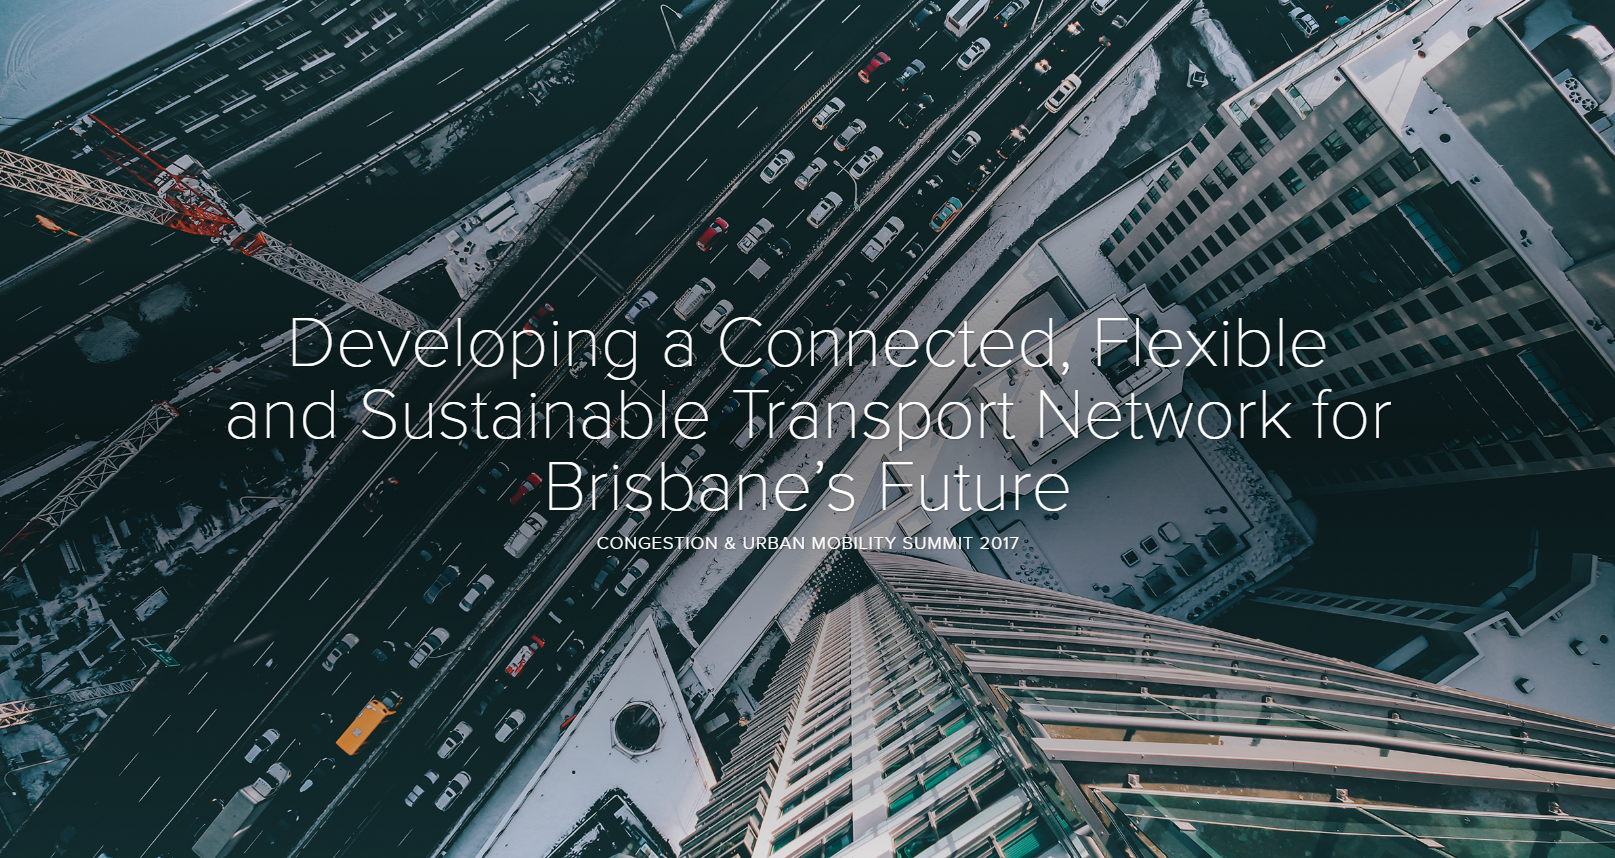 Developing a Connected, Flexible and Sustainable Transport Network for Brisbane's Future